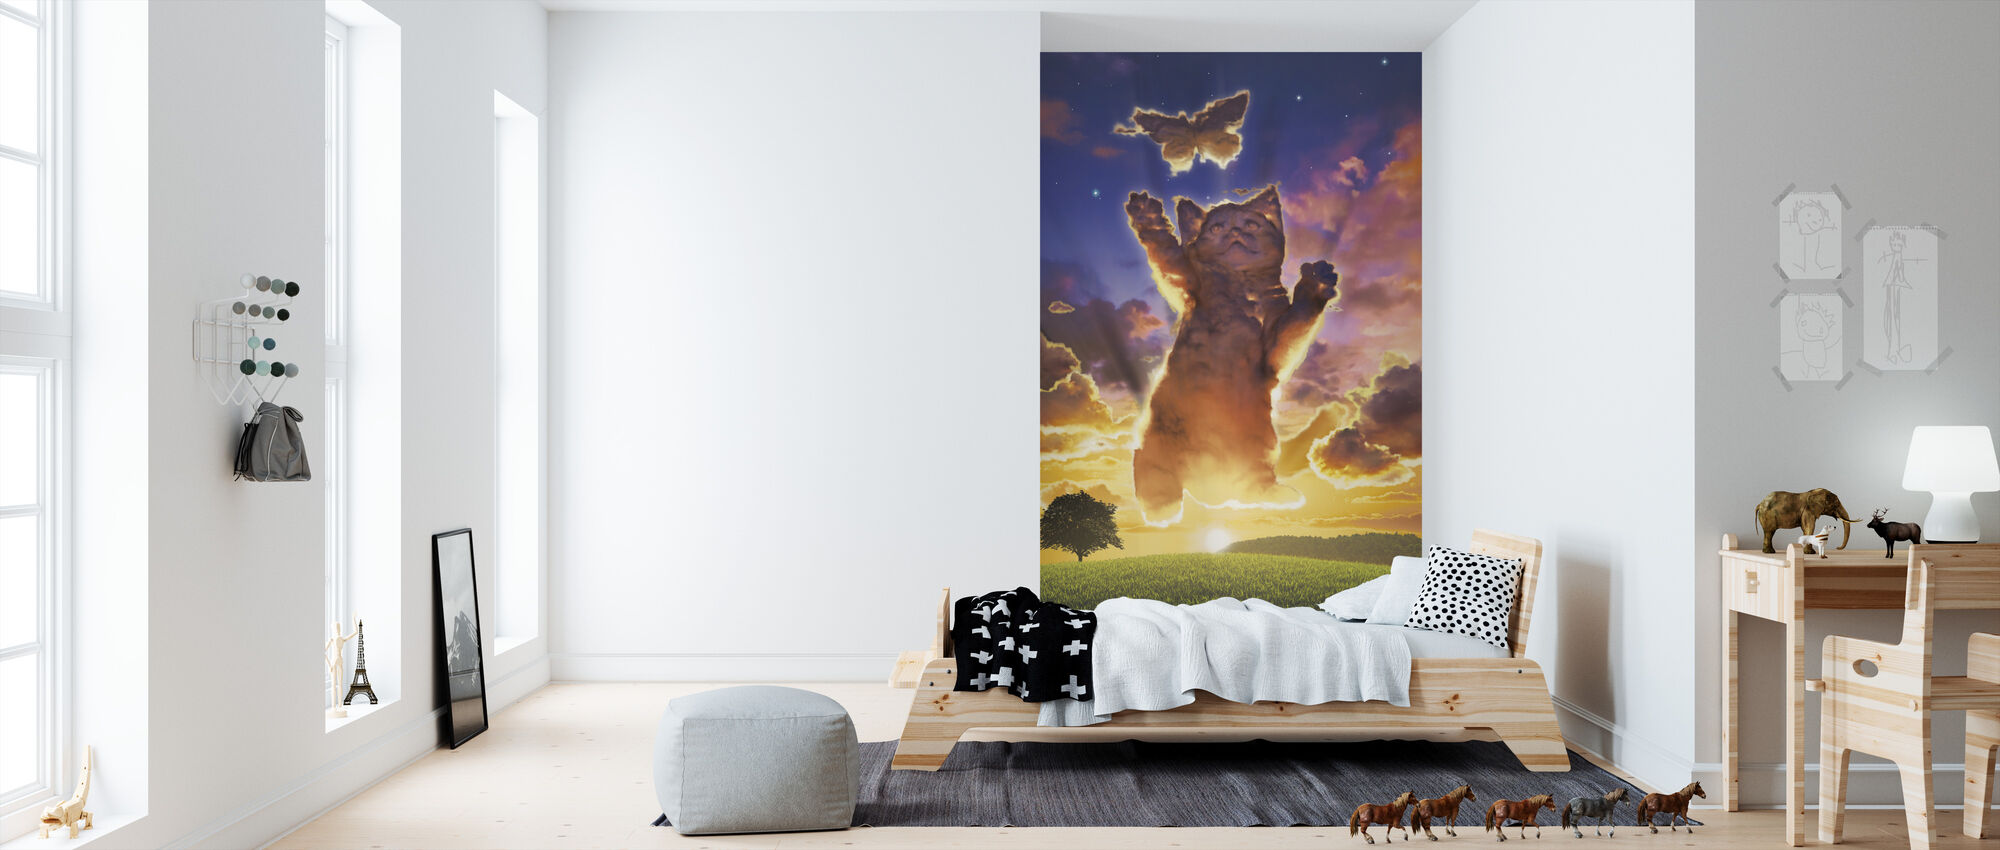 Cloud Kitten Sunset - Wallpaper - Kids Room